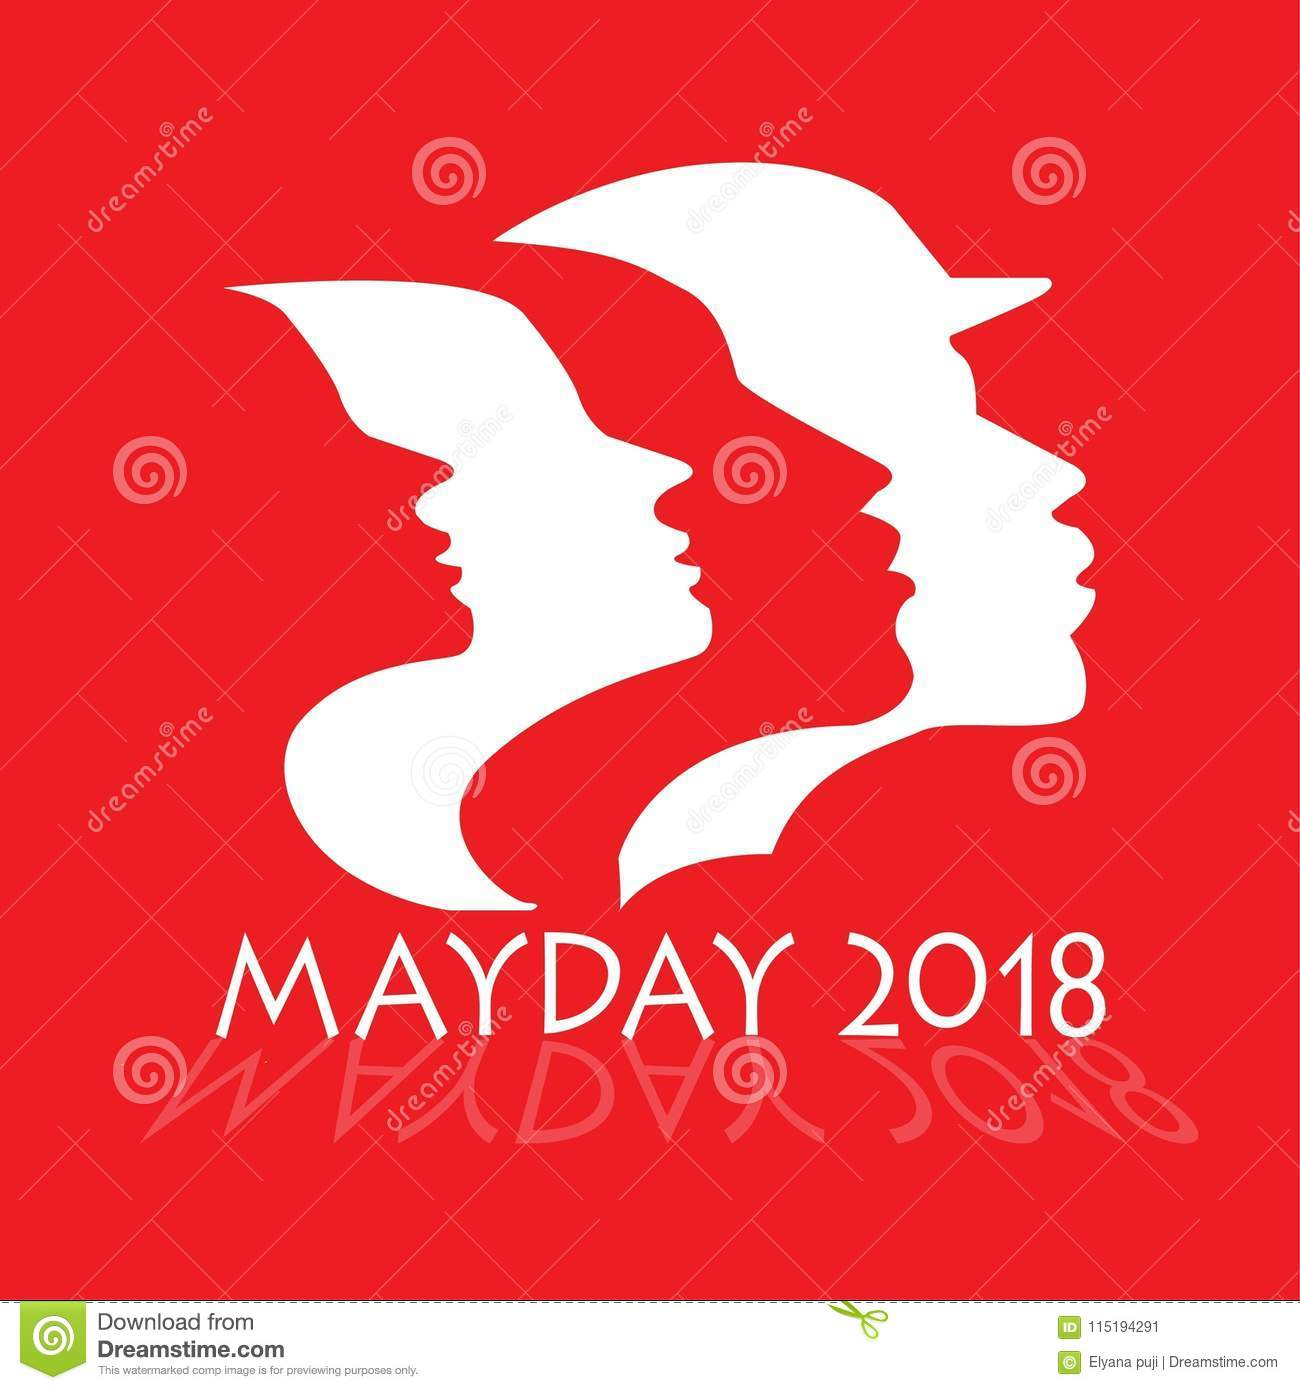 Male And Female Workers Silhouettes For The 2018 Mayday Parade Stock